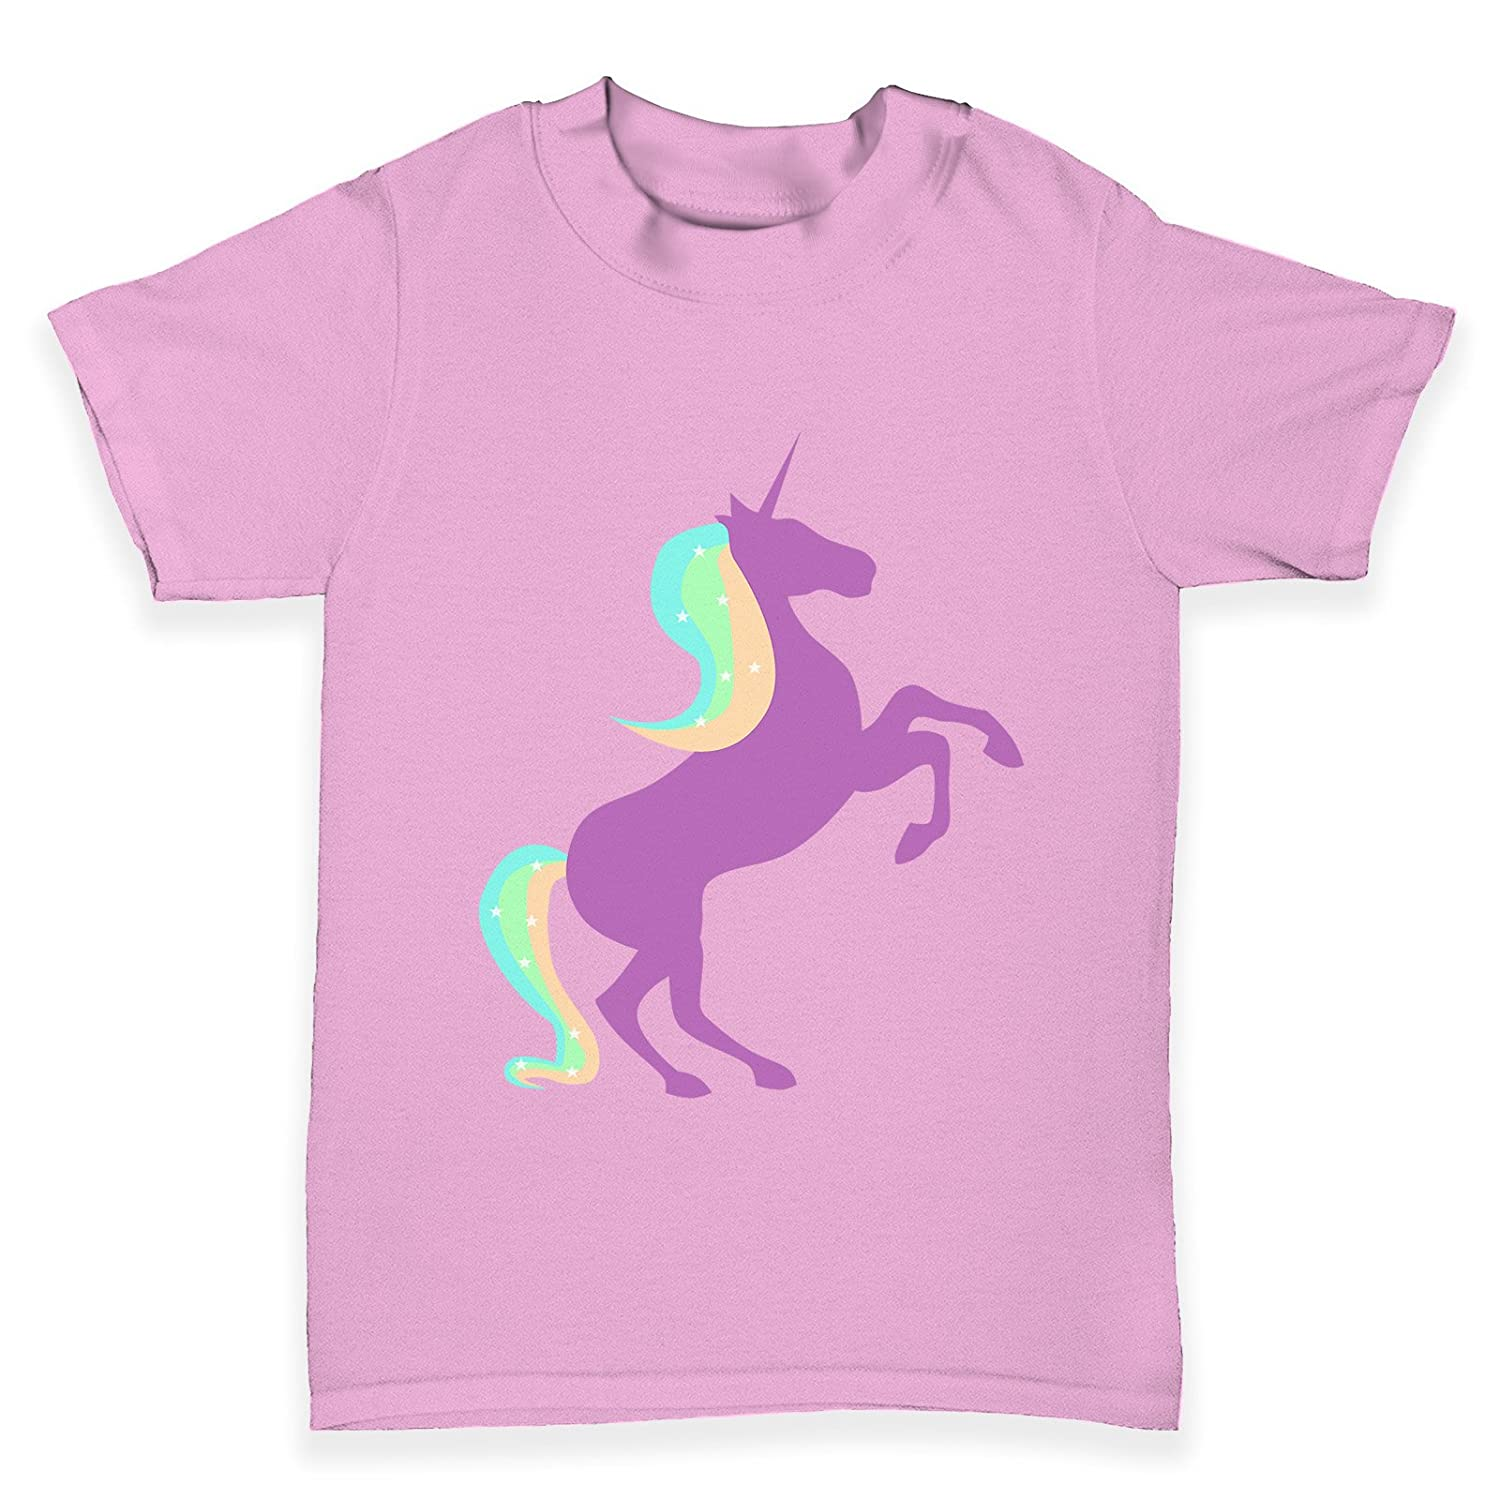 TWISTED ENVY Unicorn Silhouette Baby Toddler Funny T-Shirt